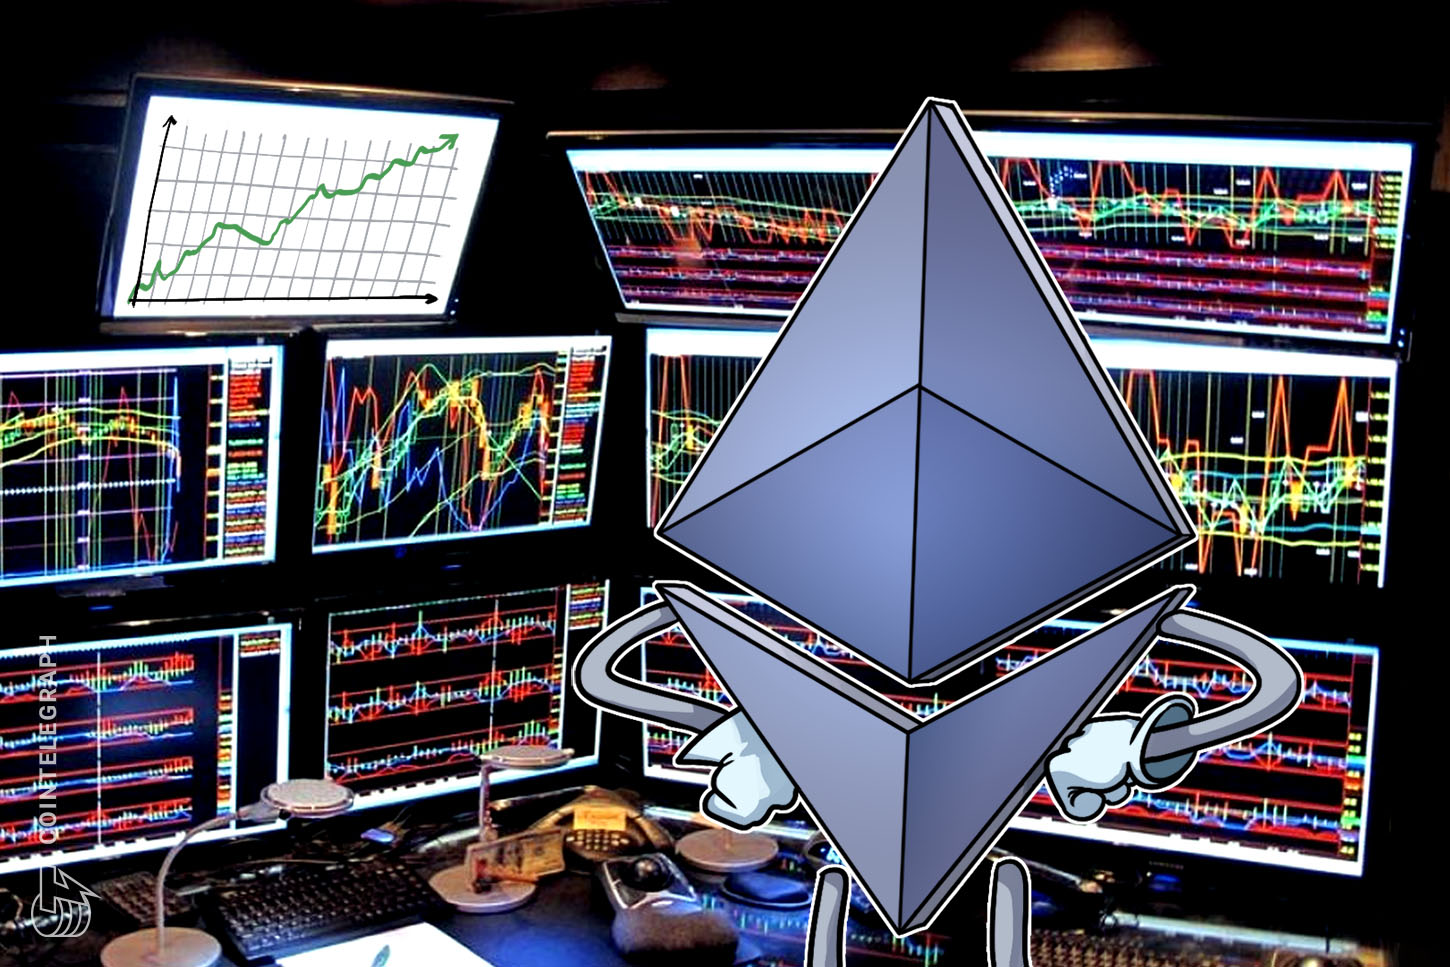 parabolic-rally-a-real-possibility-after-ethereum-price-surges-to-547